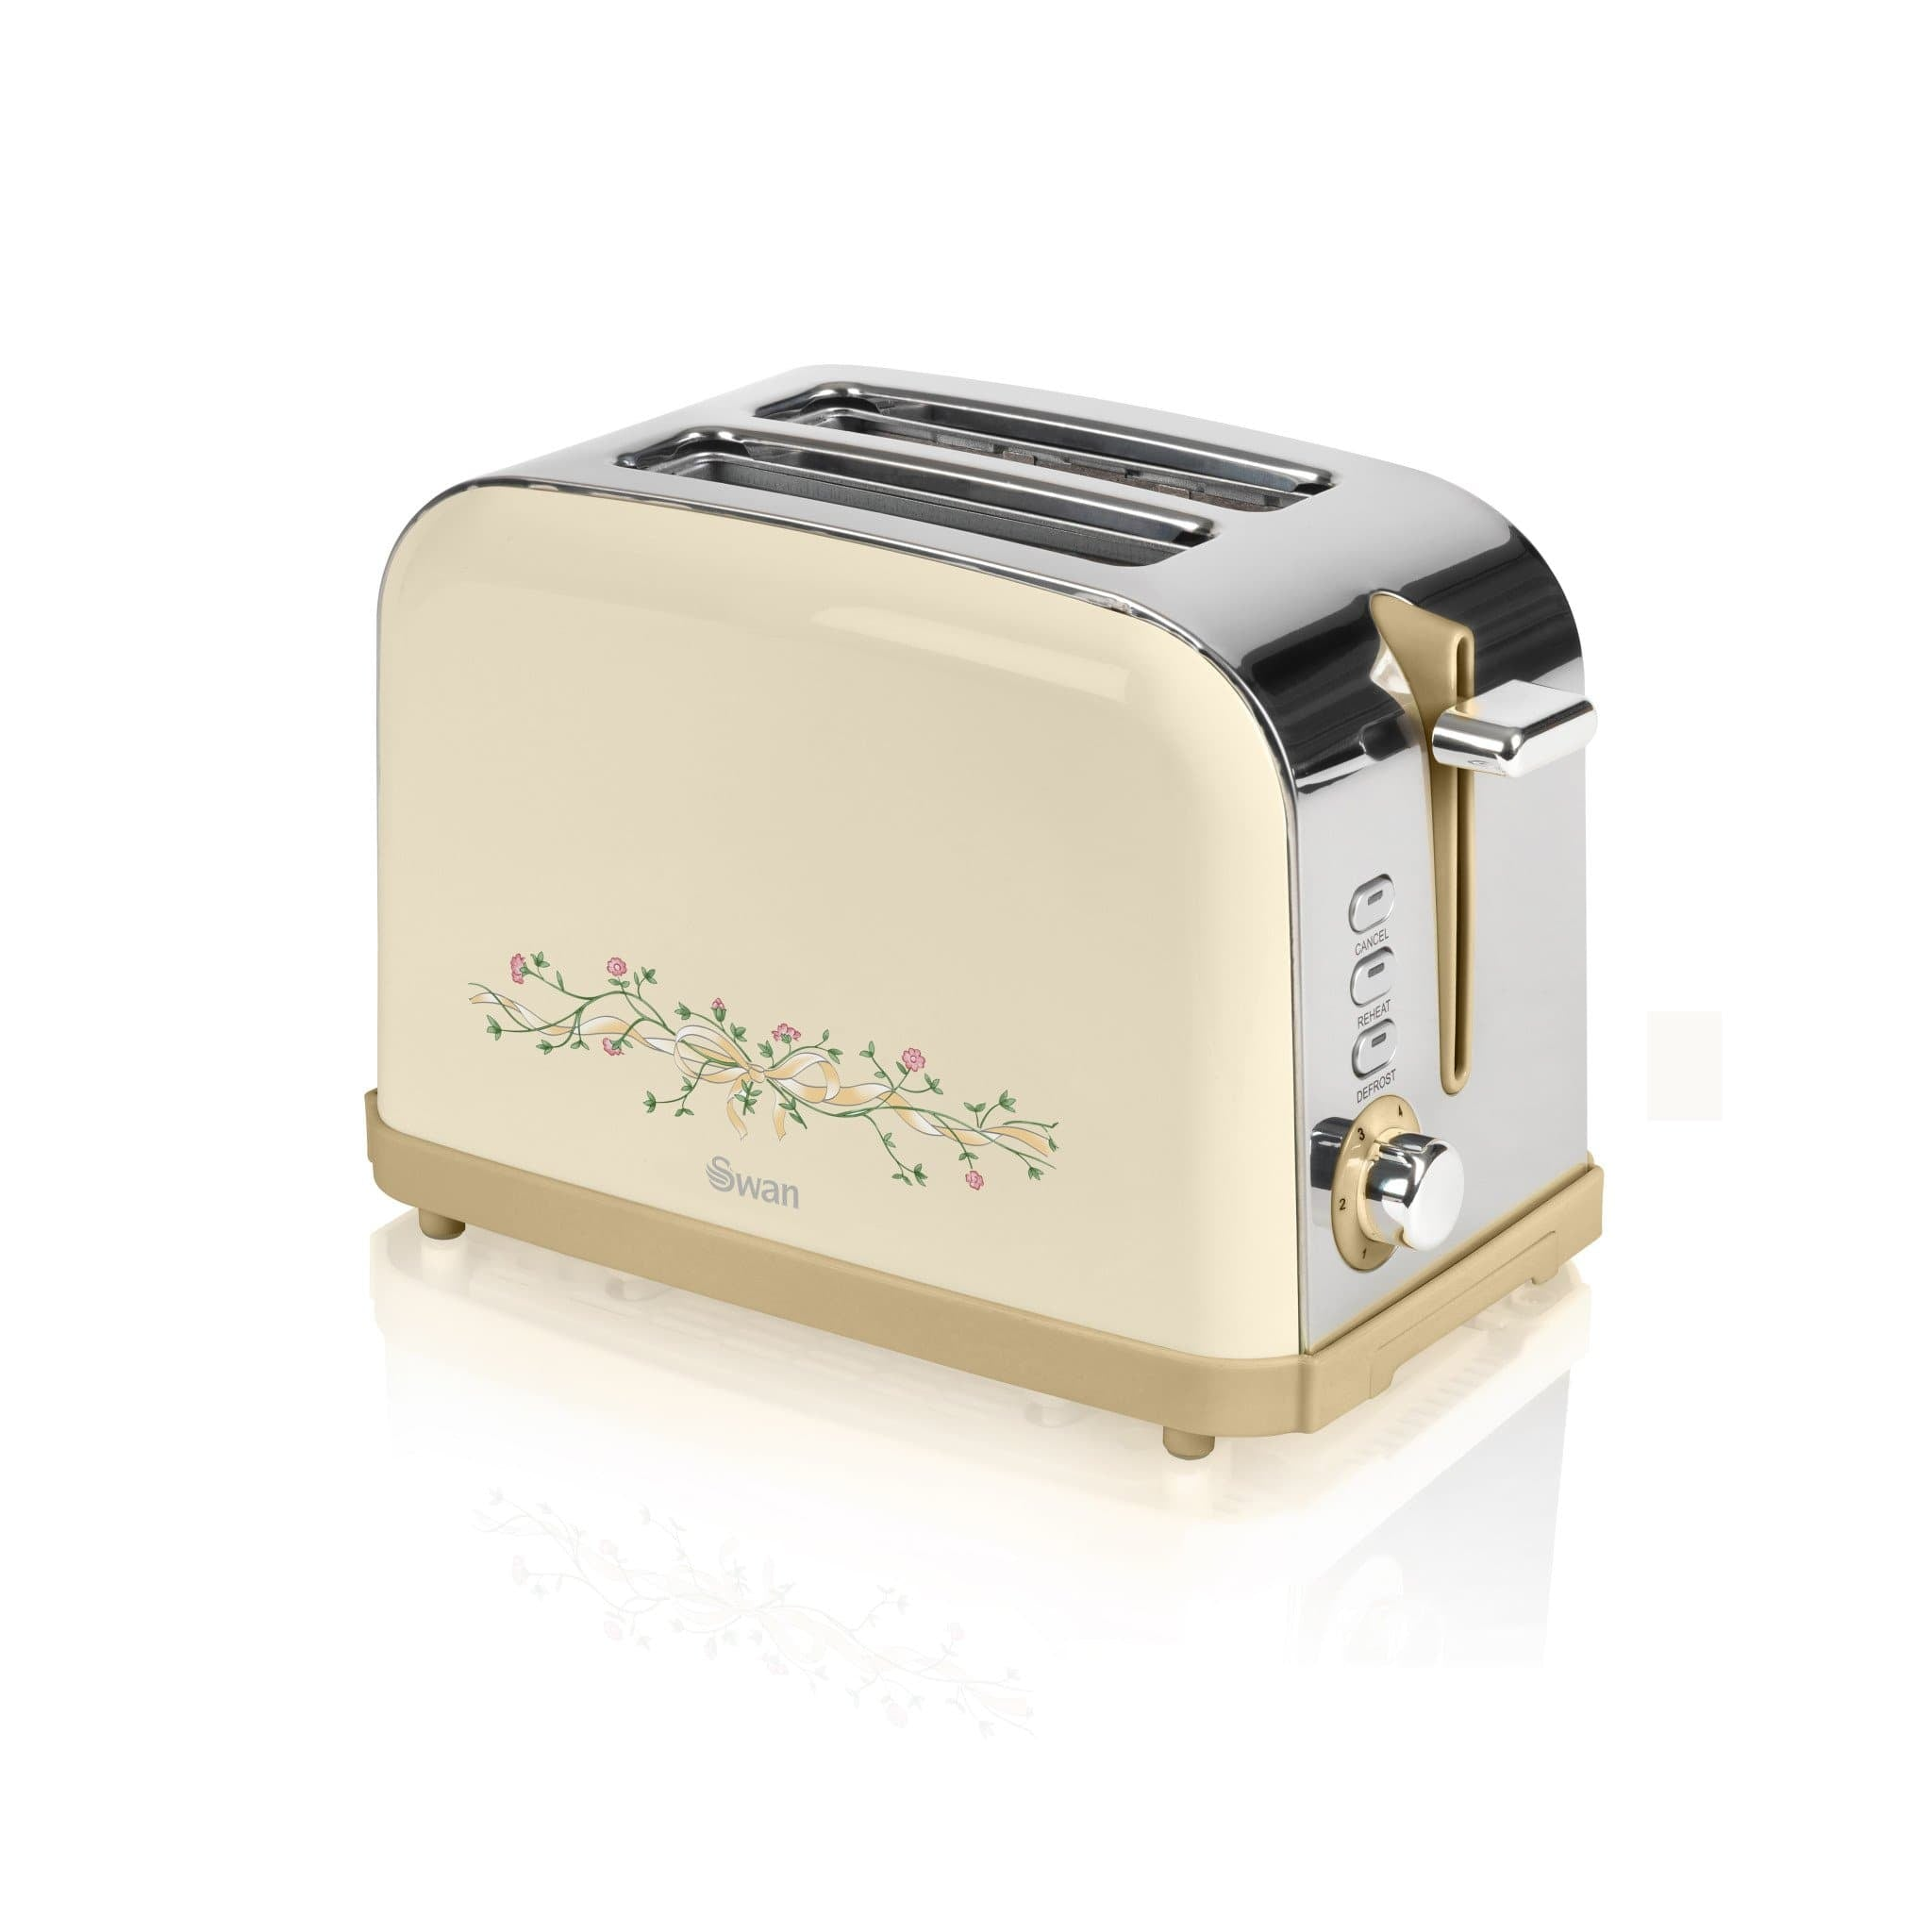 toasters slice toaster online high hero sunbeam appliances collection london image